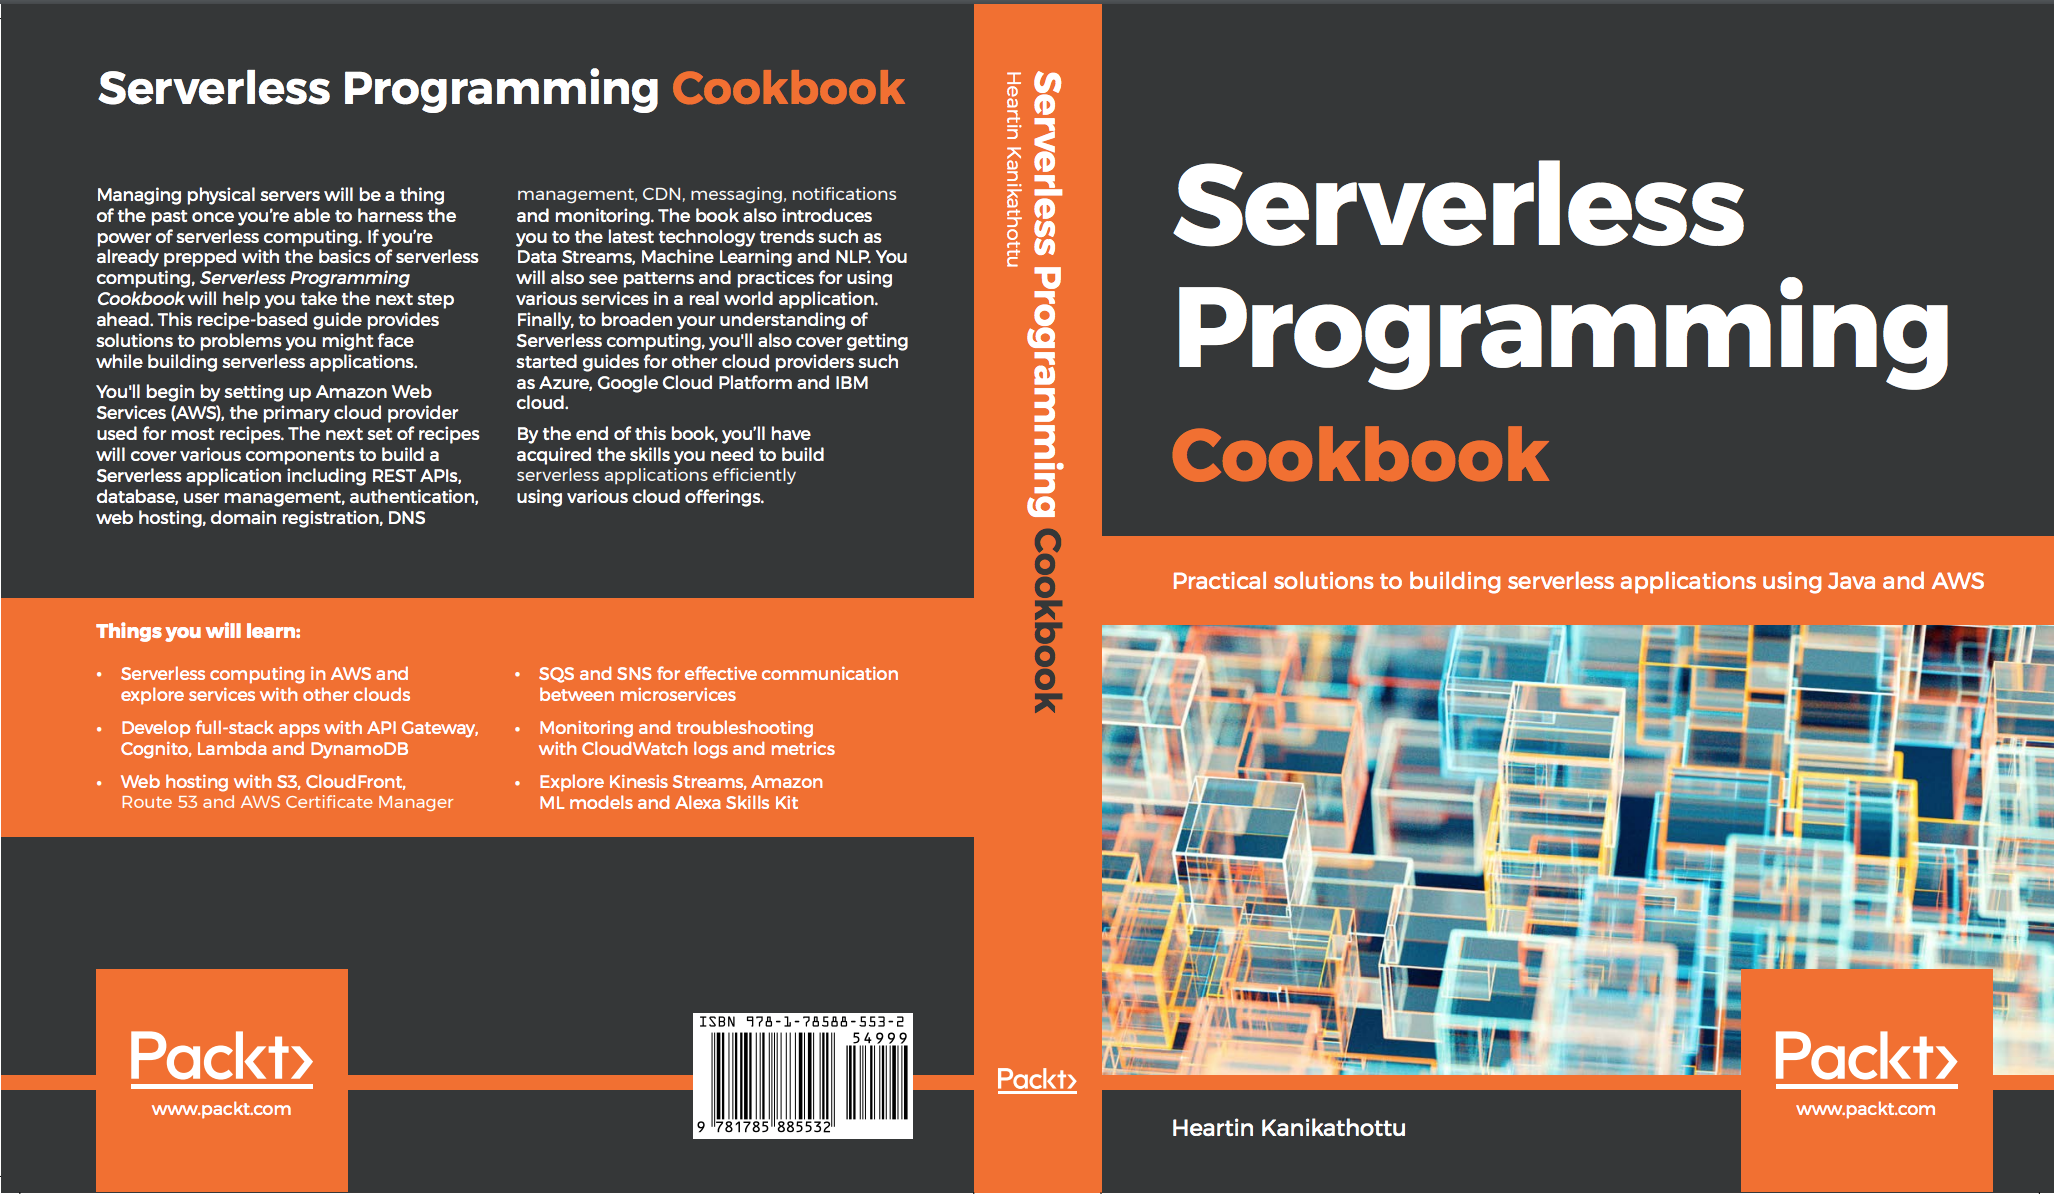 Serverless Programming Cookbook by Heartin Kanikathottu | Heartin tech